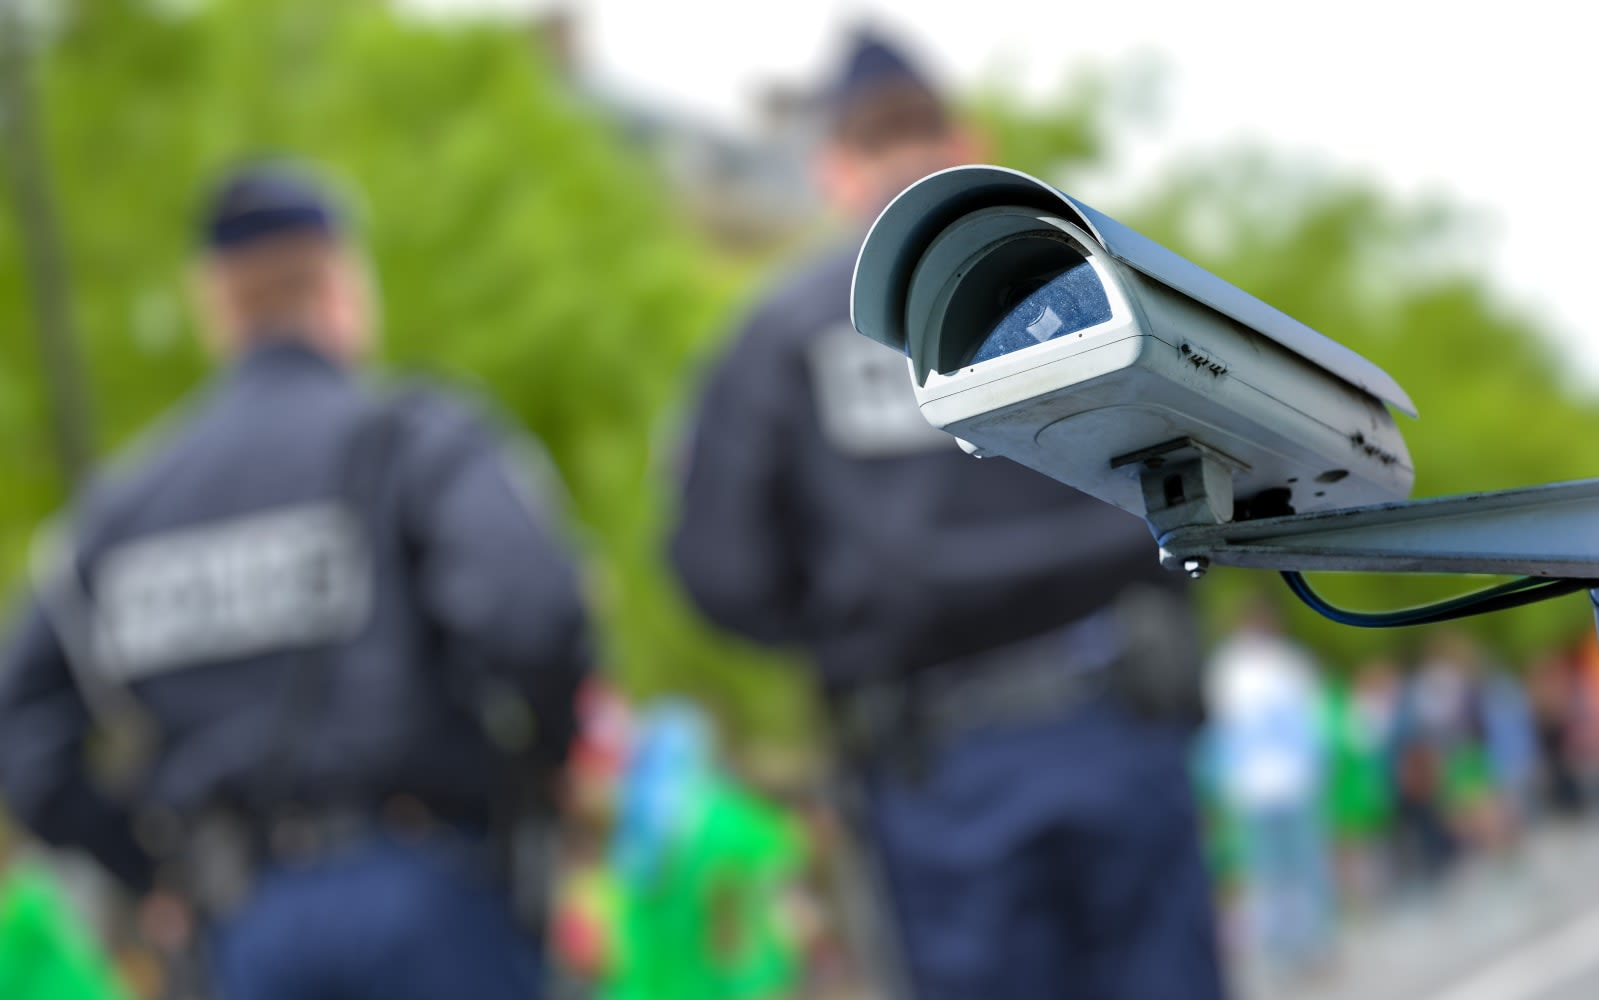 The EU may give citizens more control of their facial recognition data